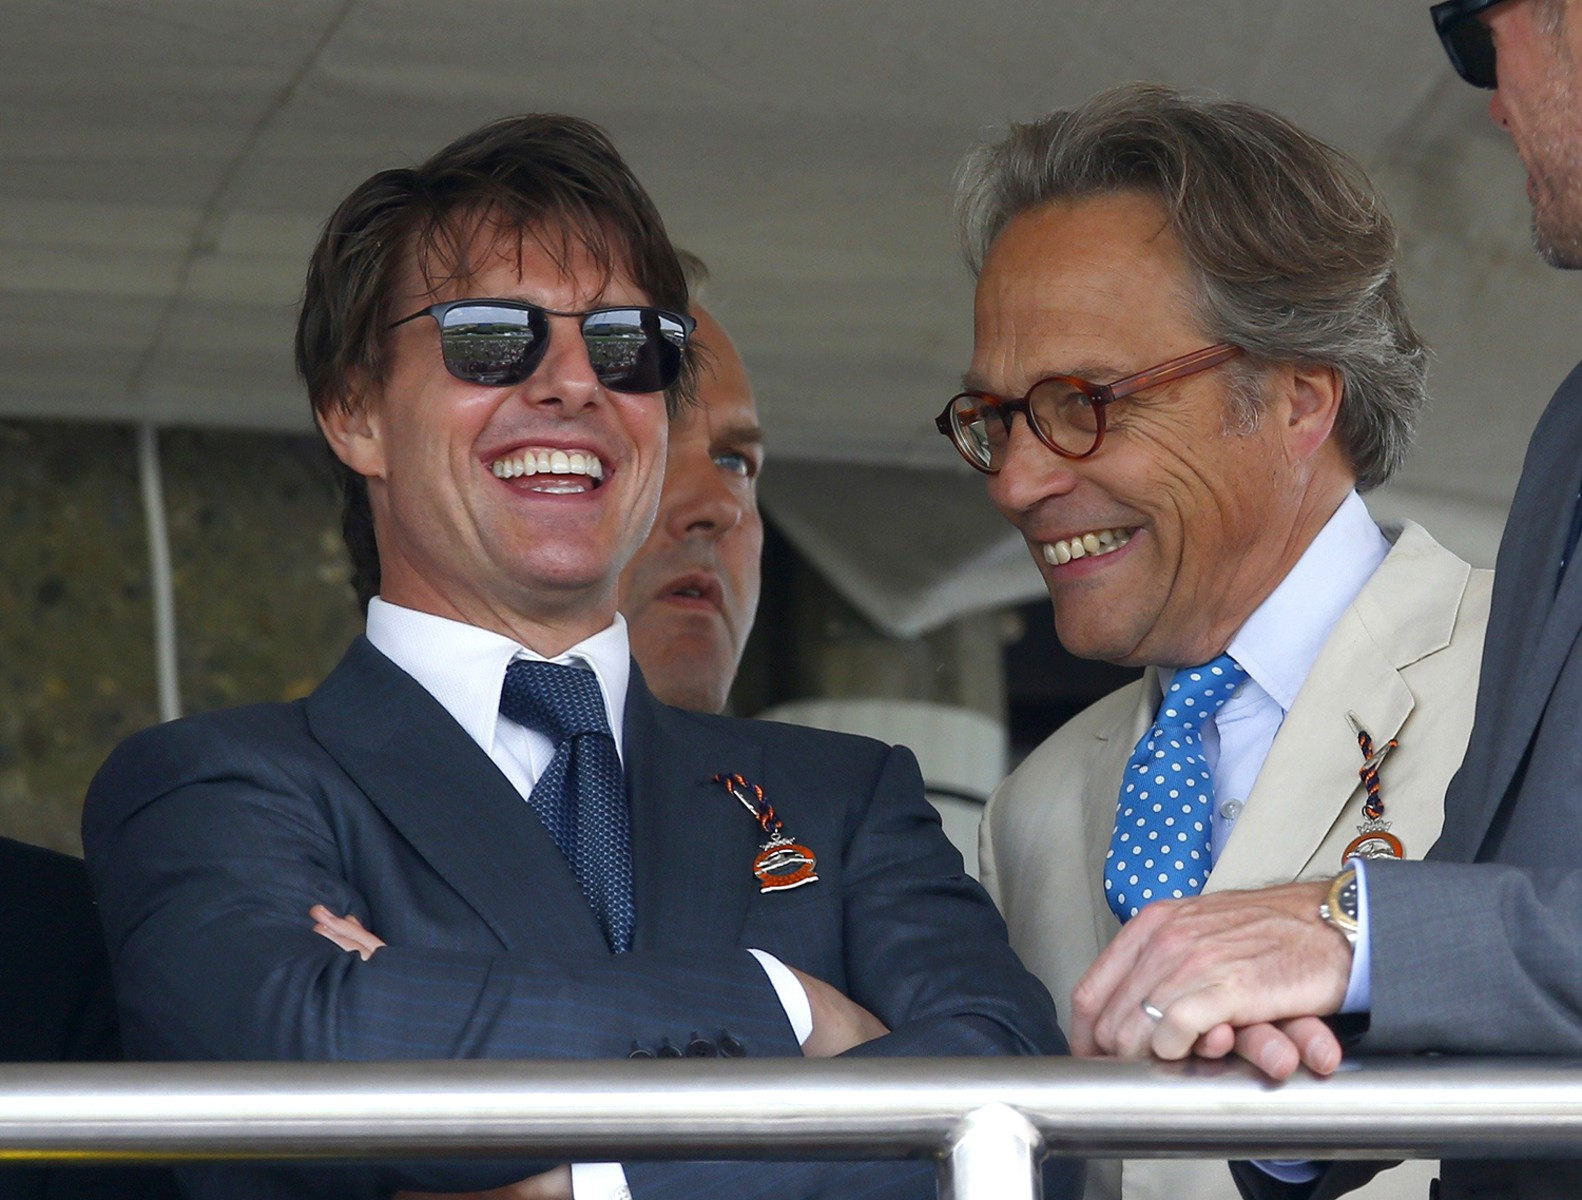 Image: Hollywood actor Cruise talks to Gordon-Lenox, Earl of March, at Goodwood racecourse